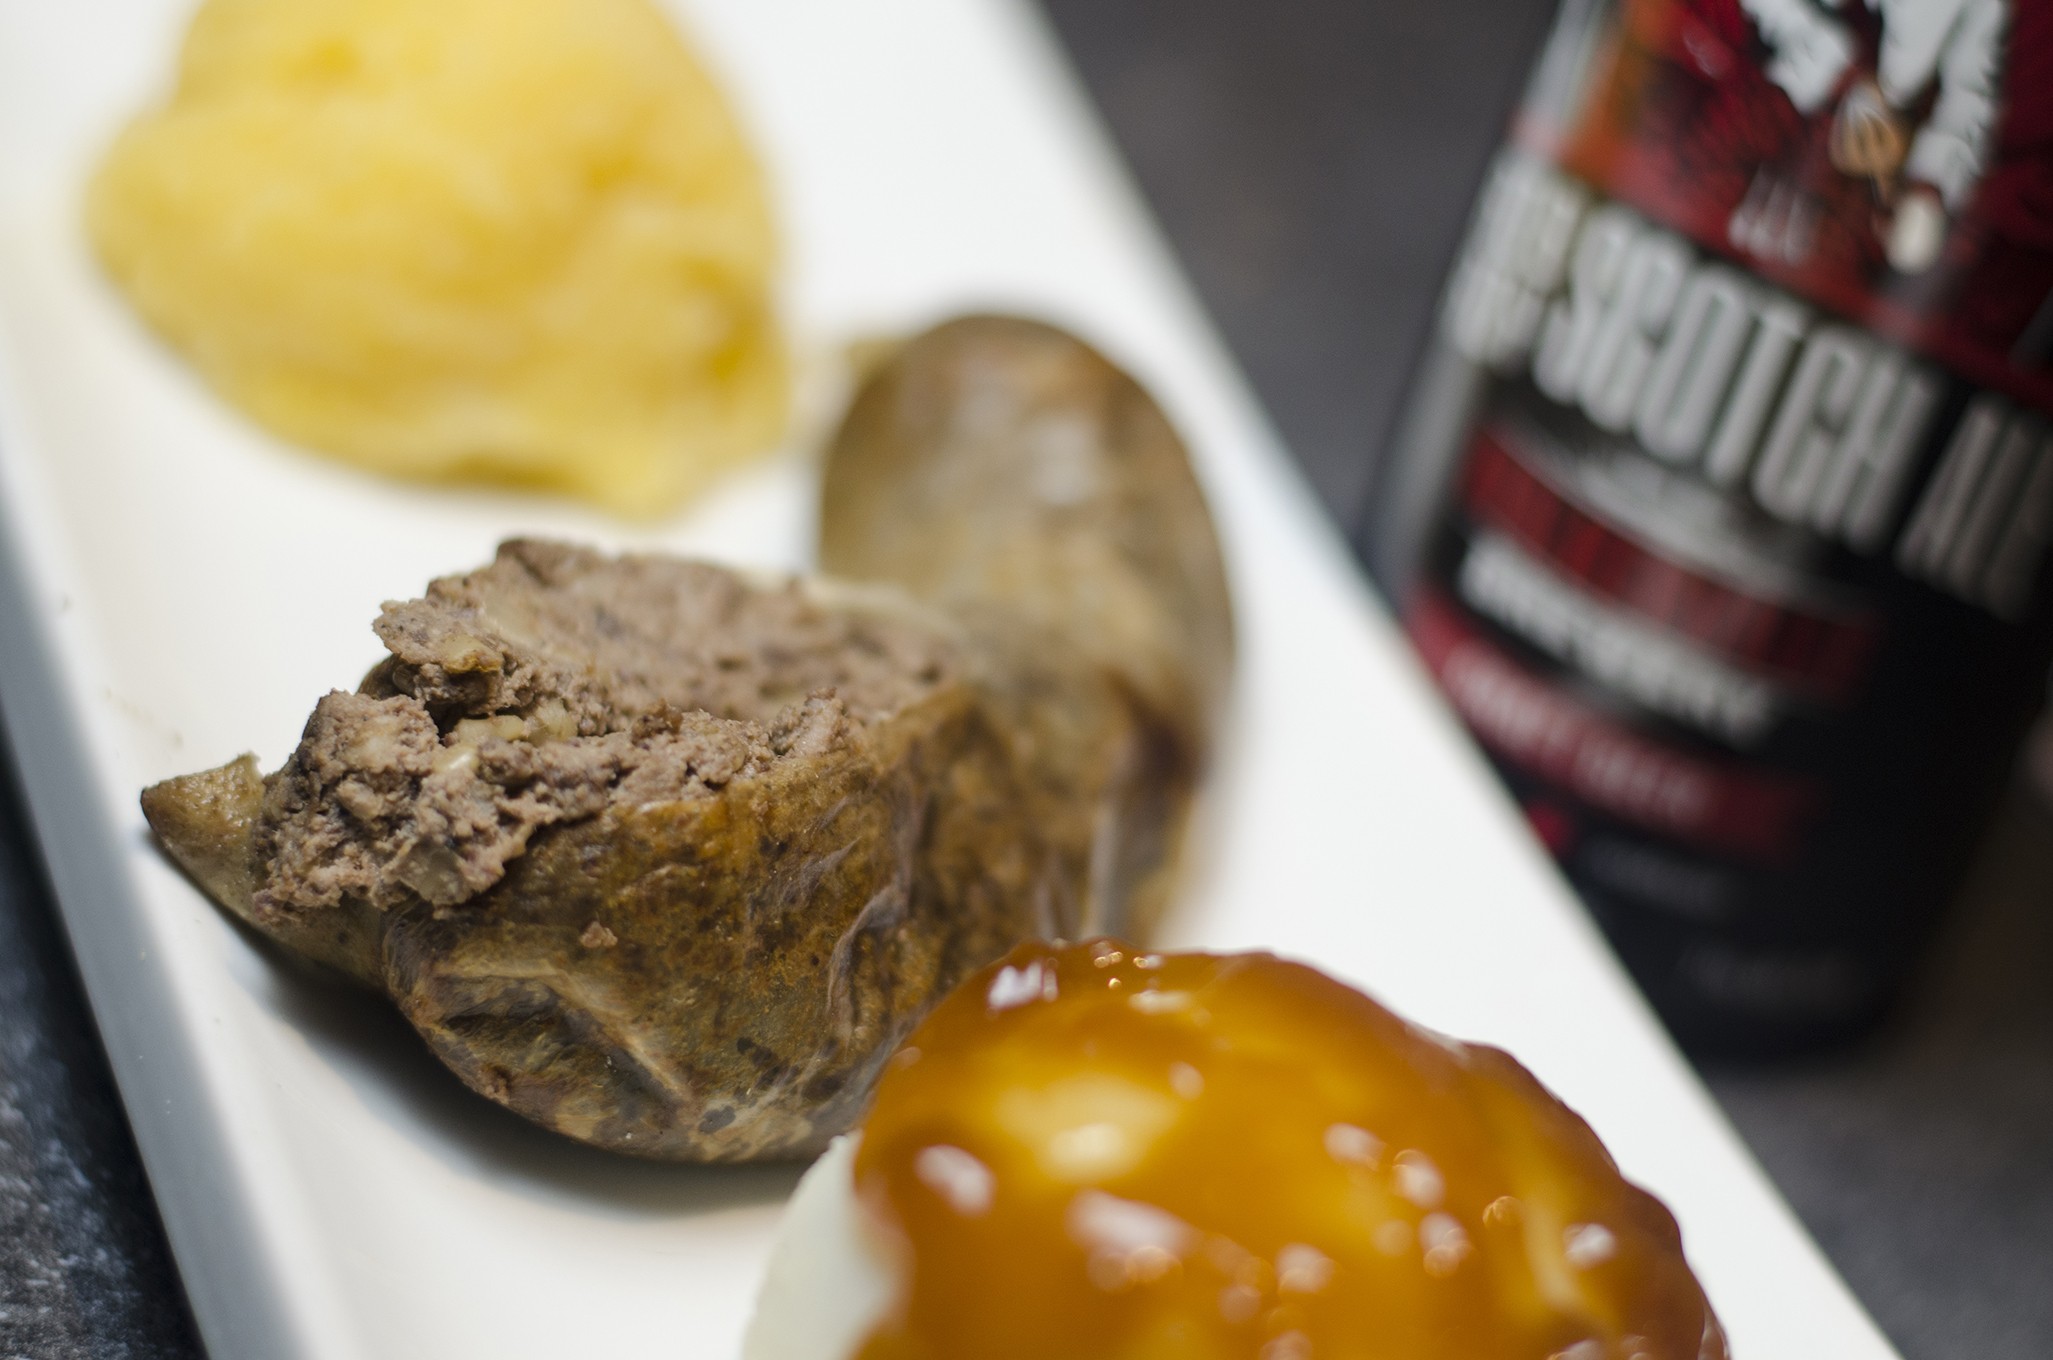 Haggis anyone? Beacon Ale House is celebrating Robbie Burns Day in Amherstburg, Ontario.